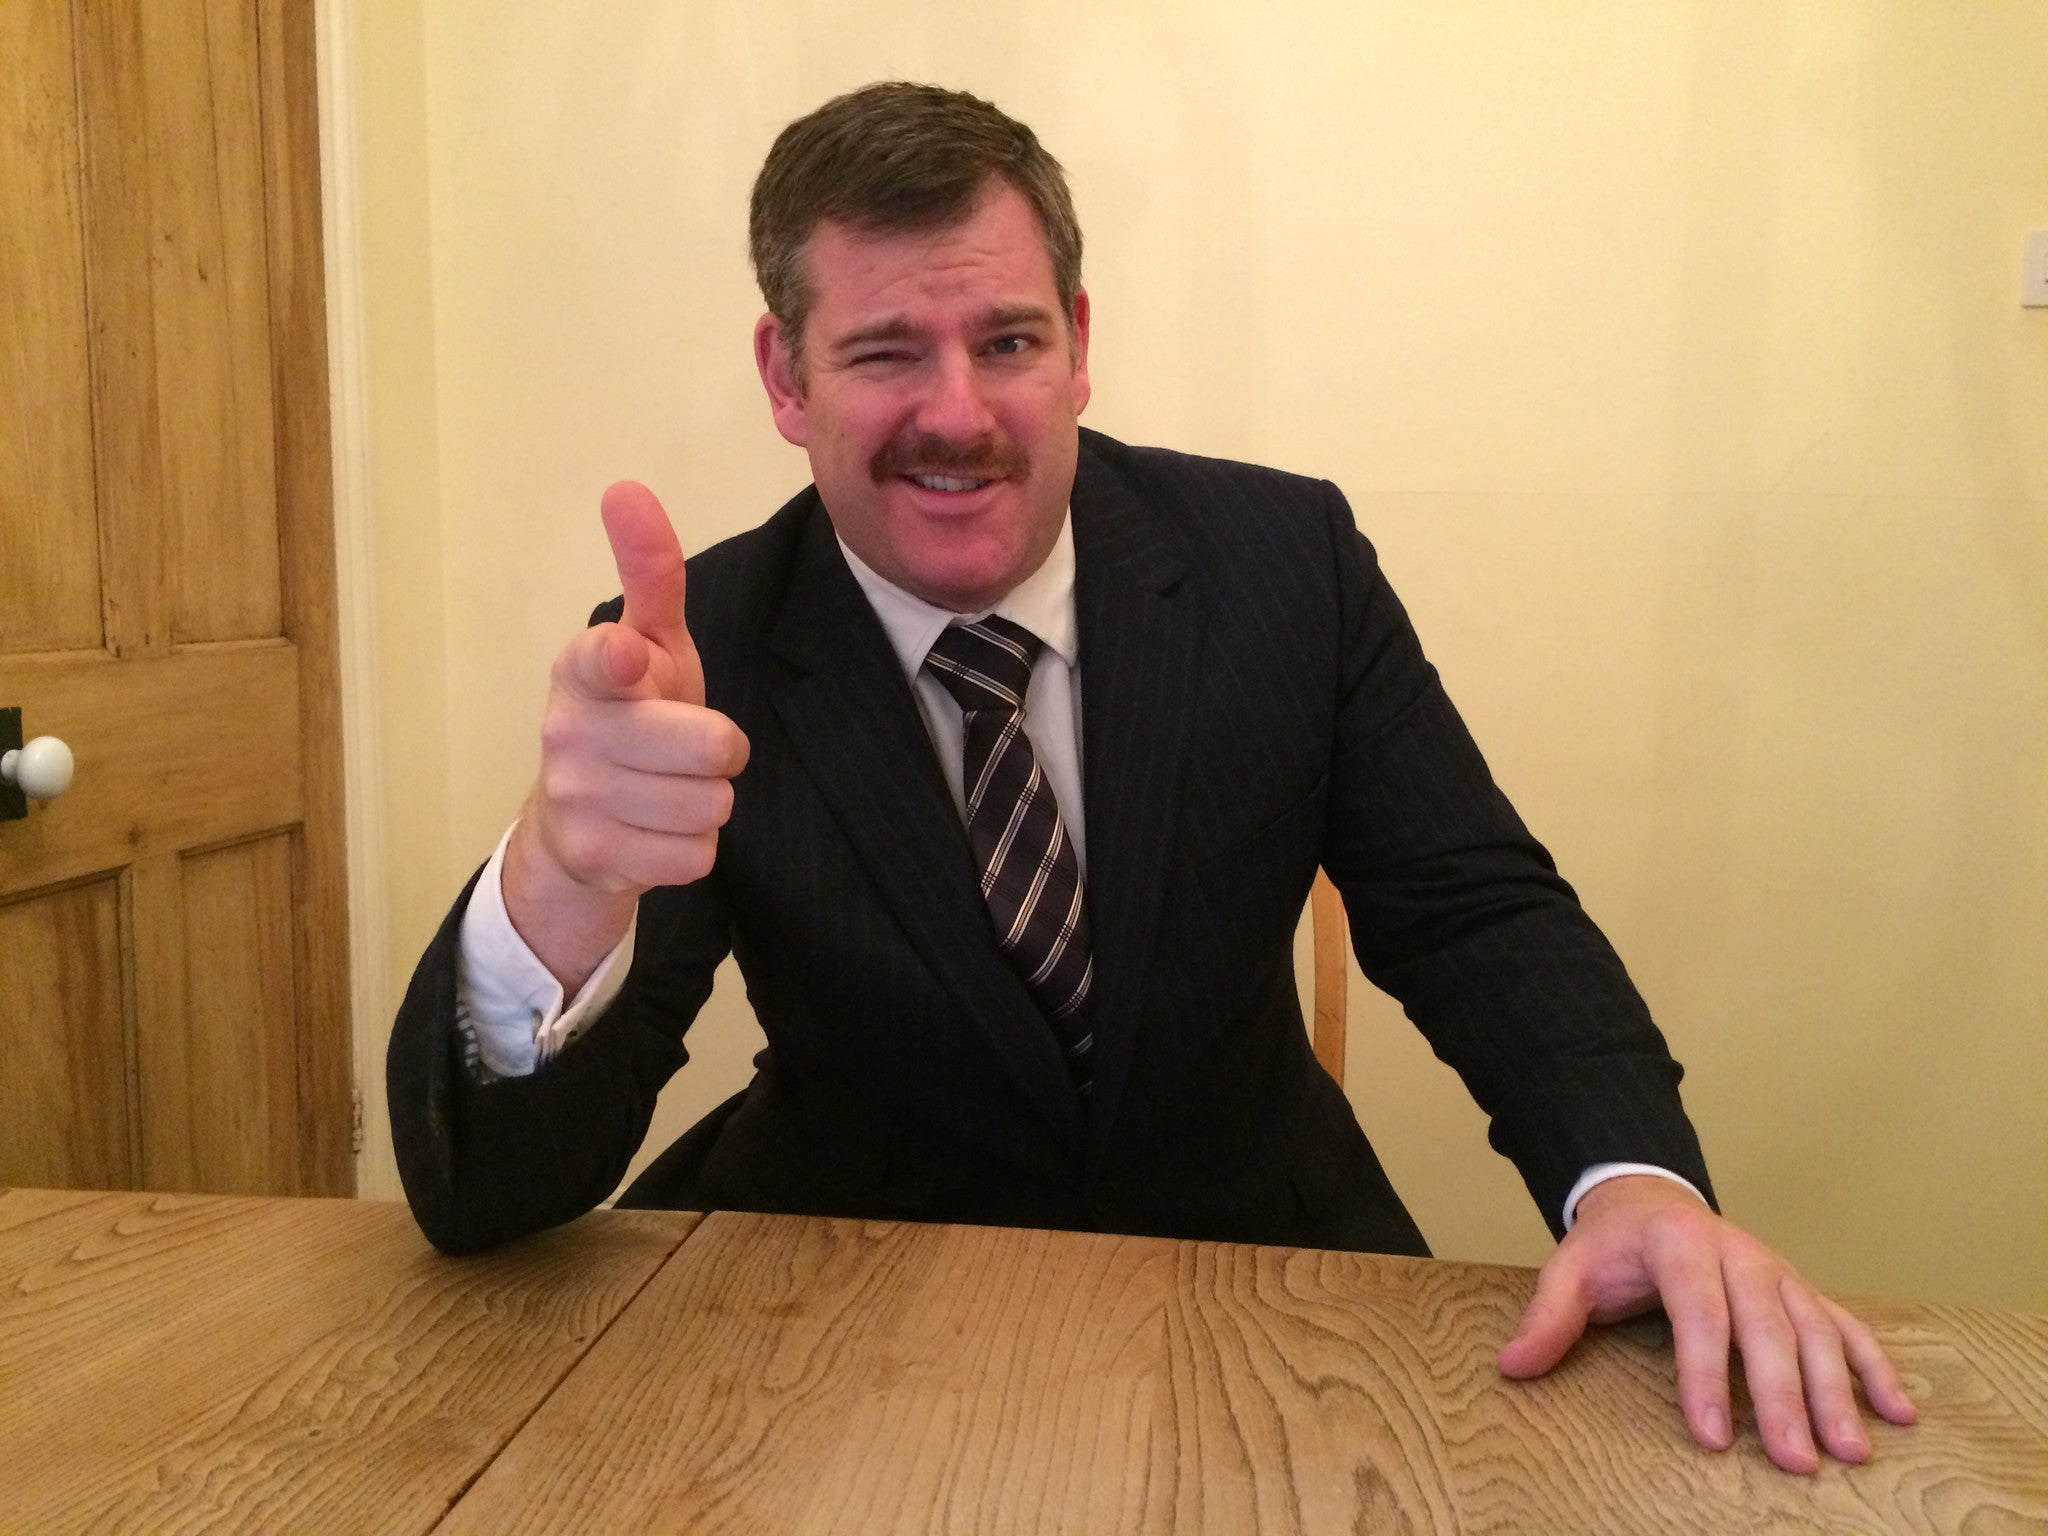 Movember - Your chance to donate